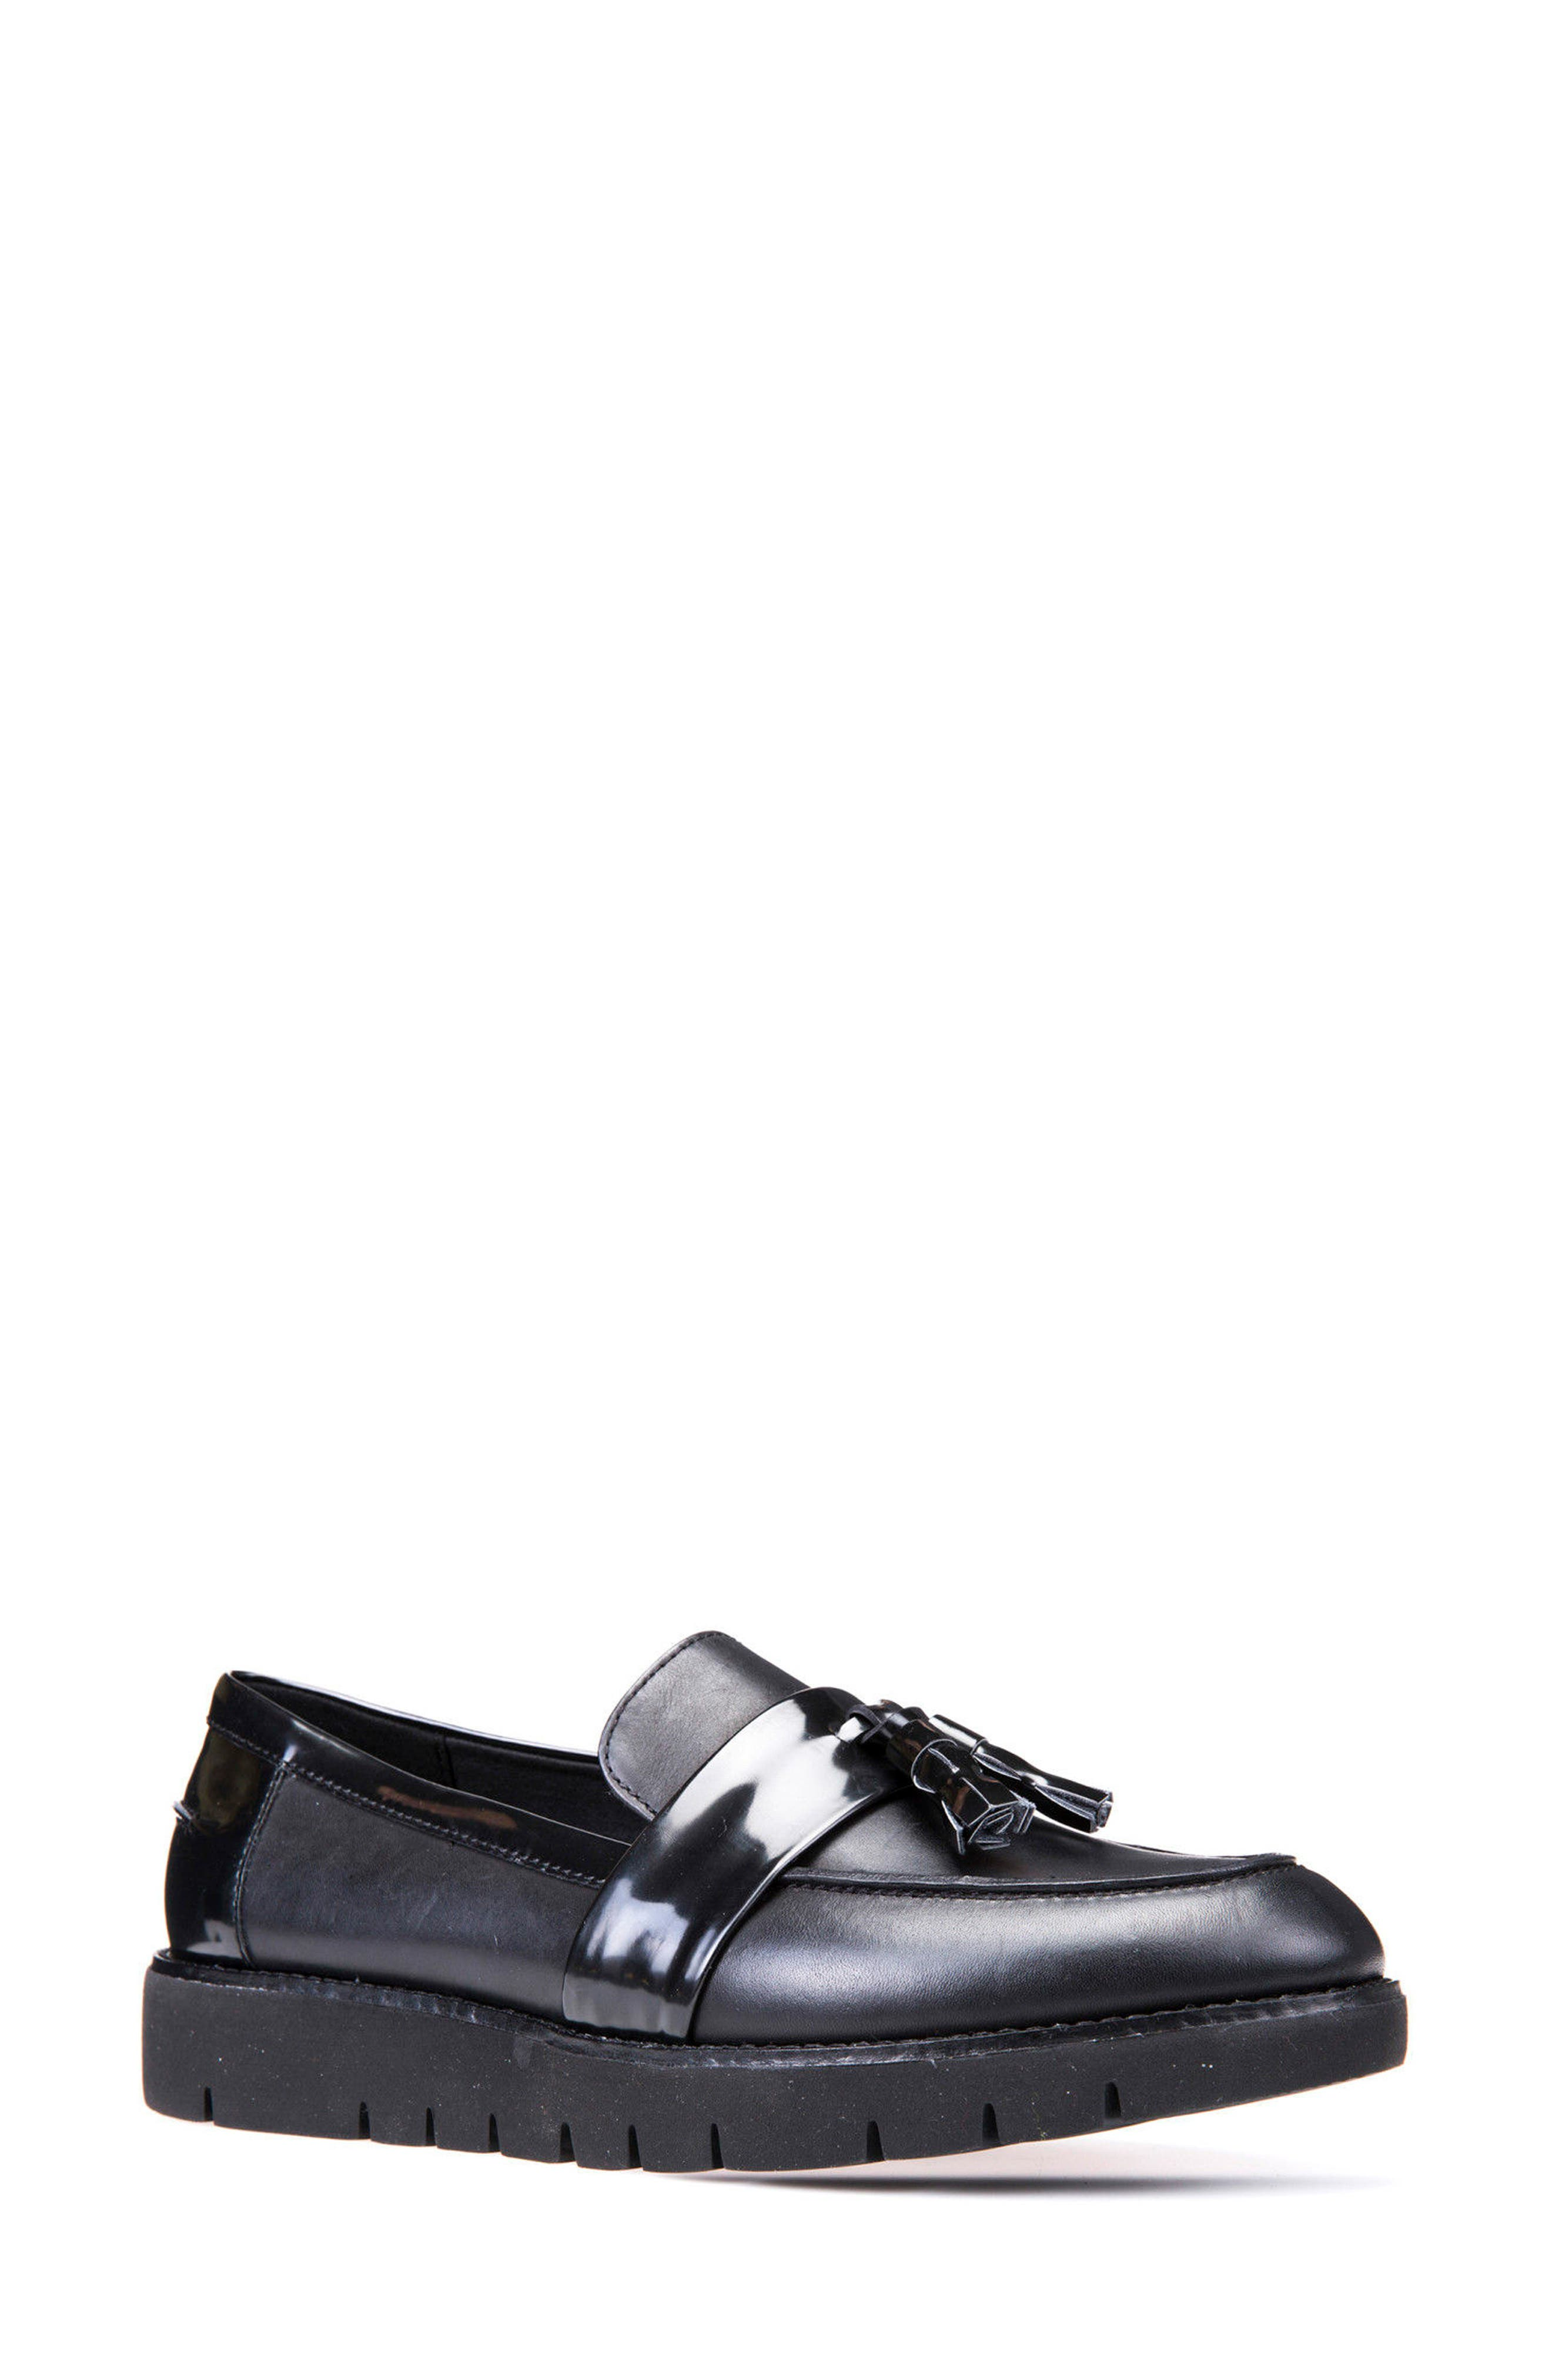 Blenda Tassel Loafer,                             Main thumbnail 1, color,                             001